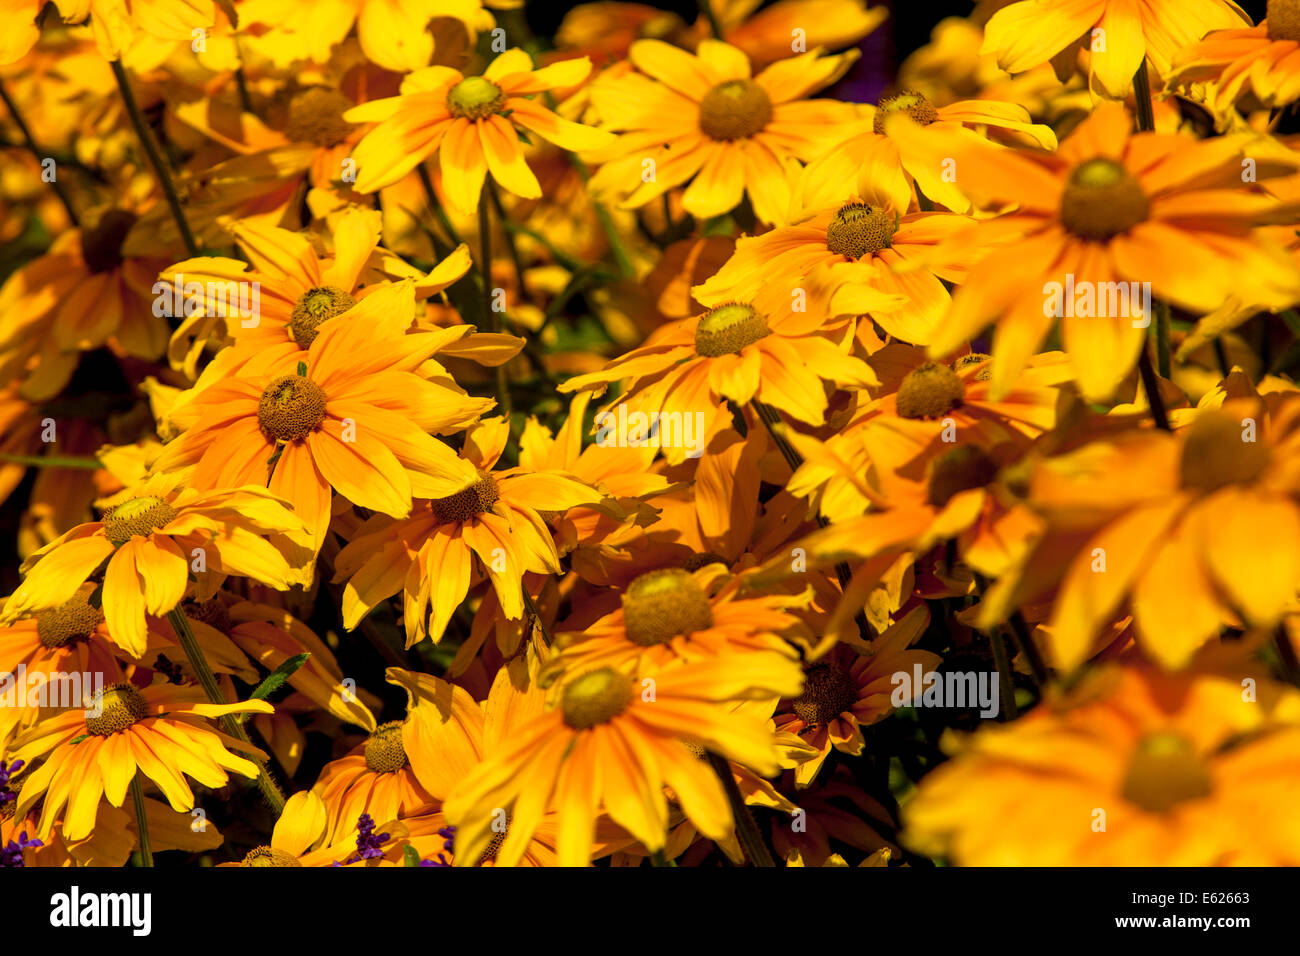 Annual flowers flower bed stock photos annual flowers flower bed colorful flower bed of annual flowers rudbeckia hirta salvia spendens stock image izmirmasajfo Image collections